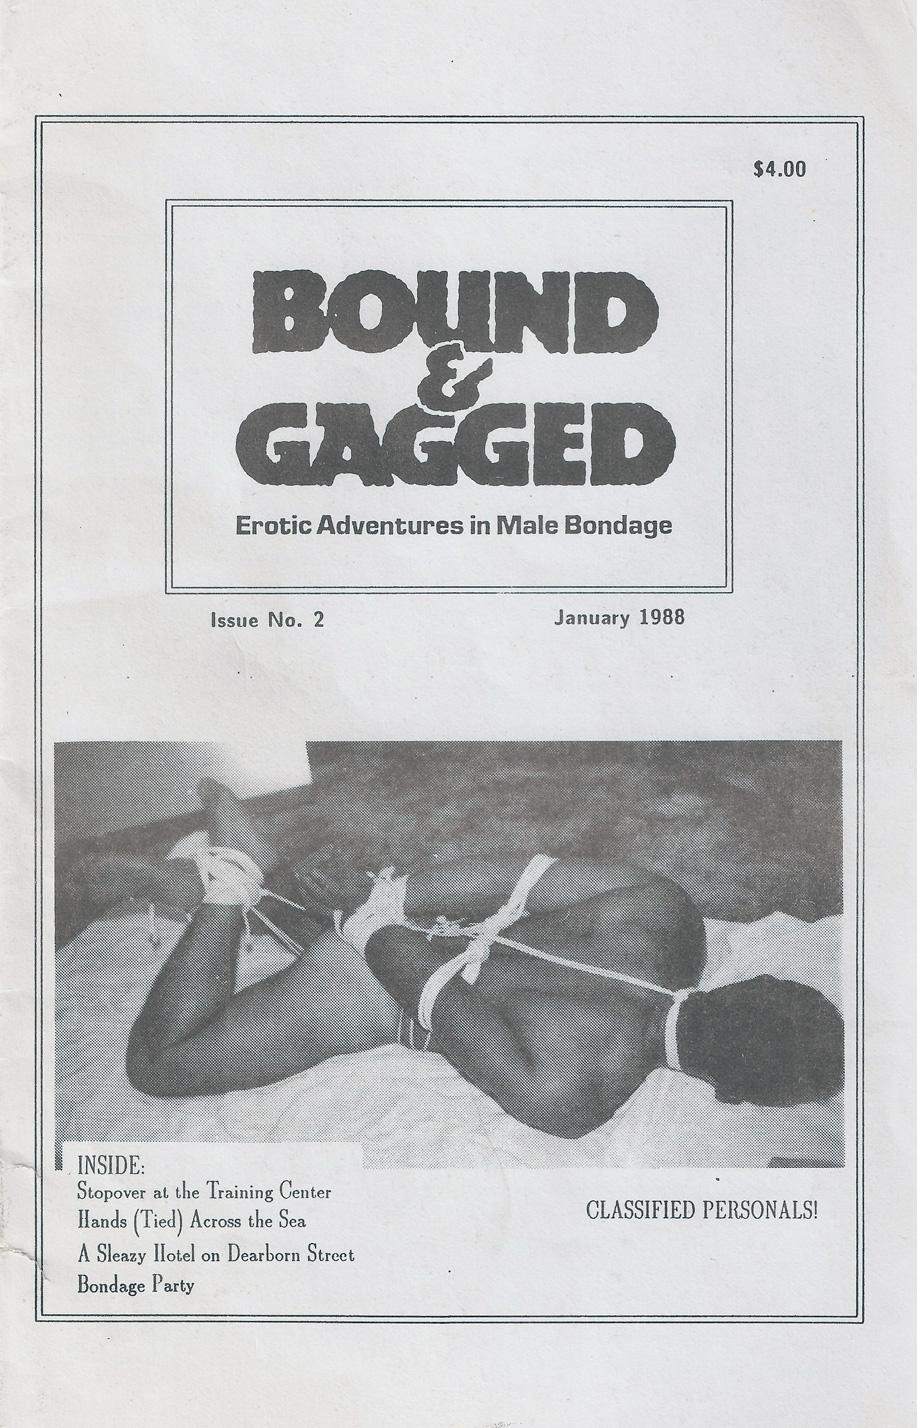 Bound & gagged magazine classic issues